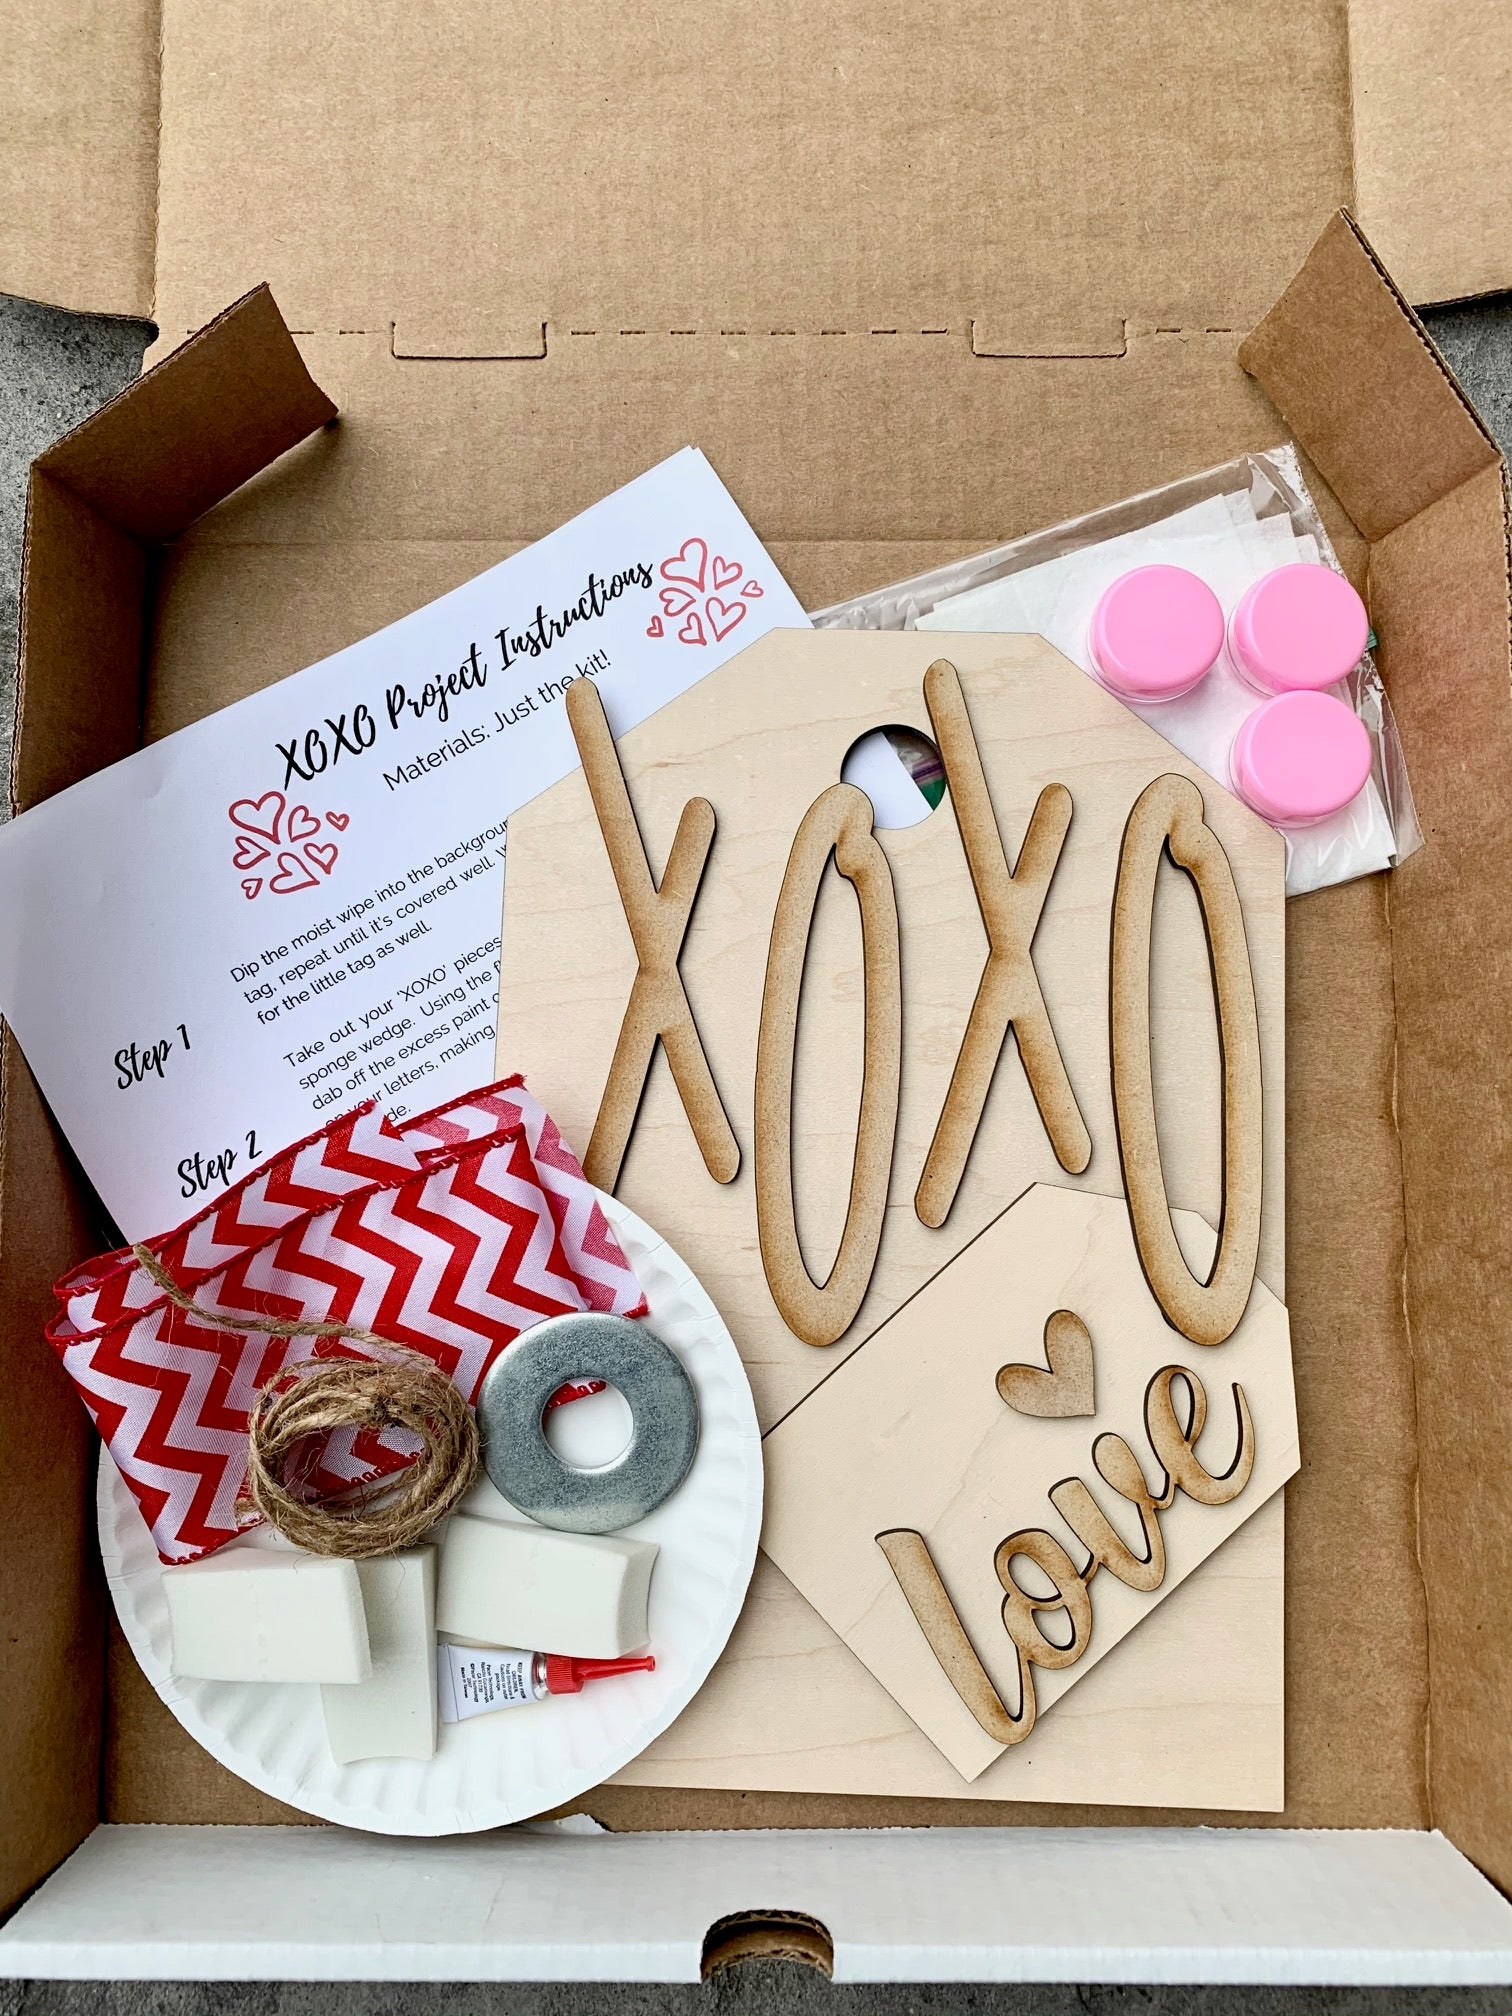 XOXO LOVE - Complete Decor Box